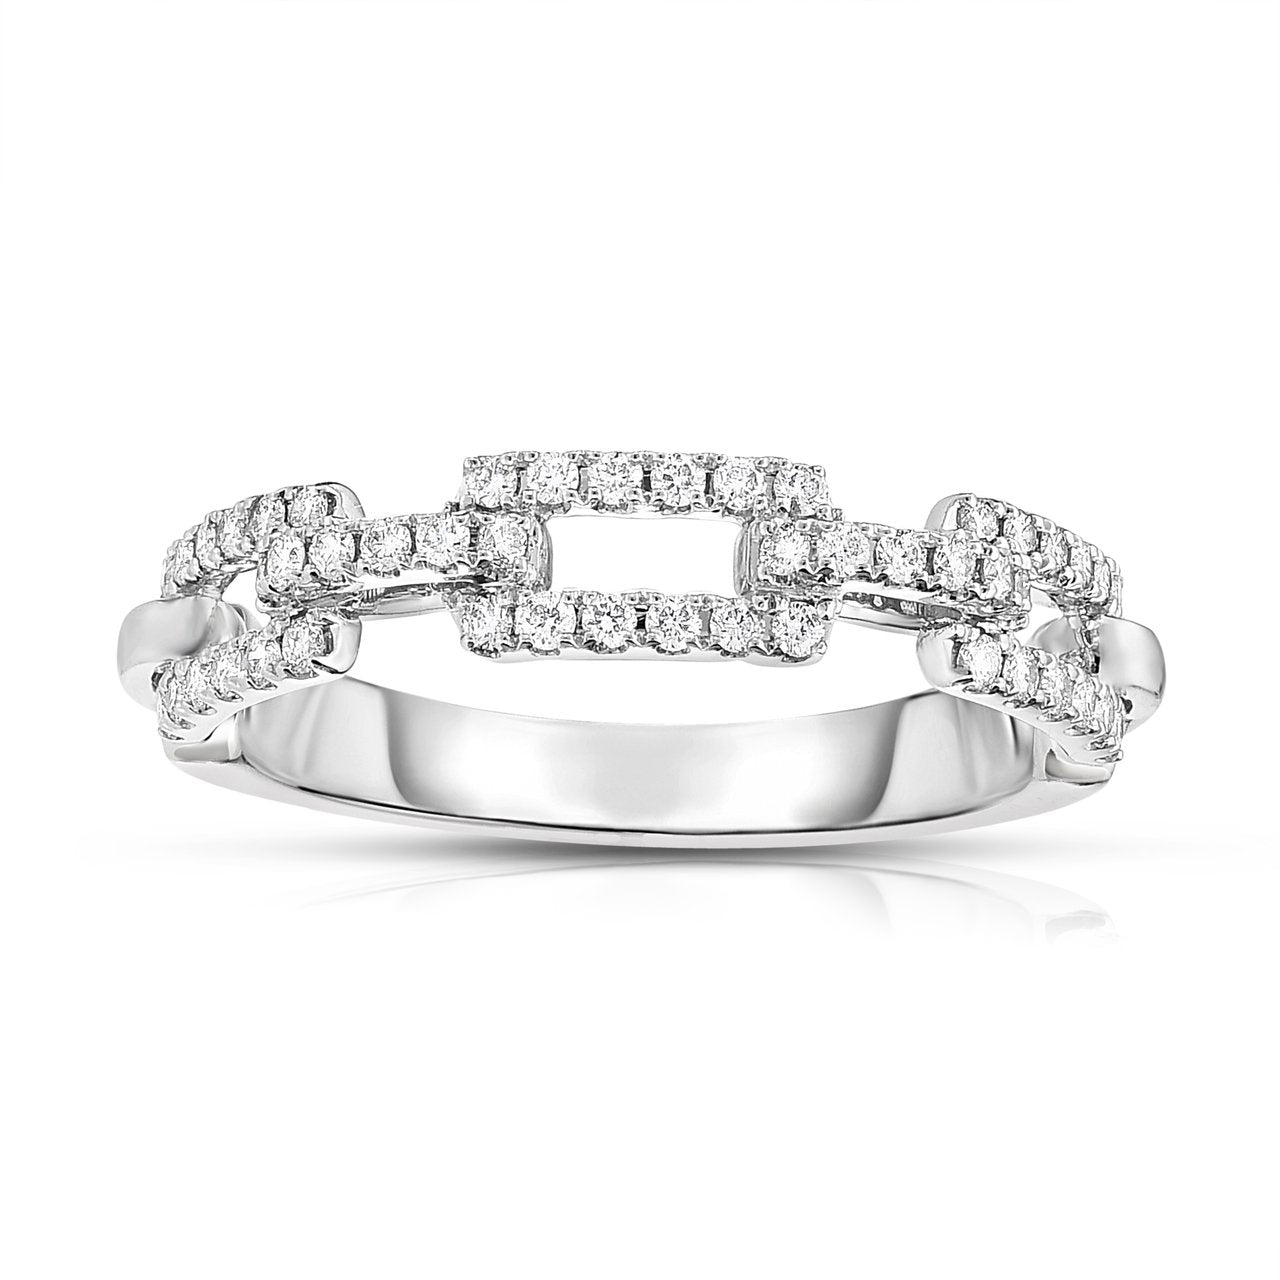 Sabel Collection 14K White Gold Diamond Link Ring